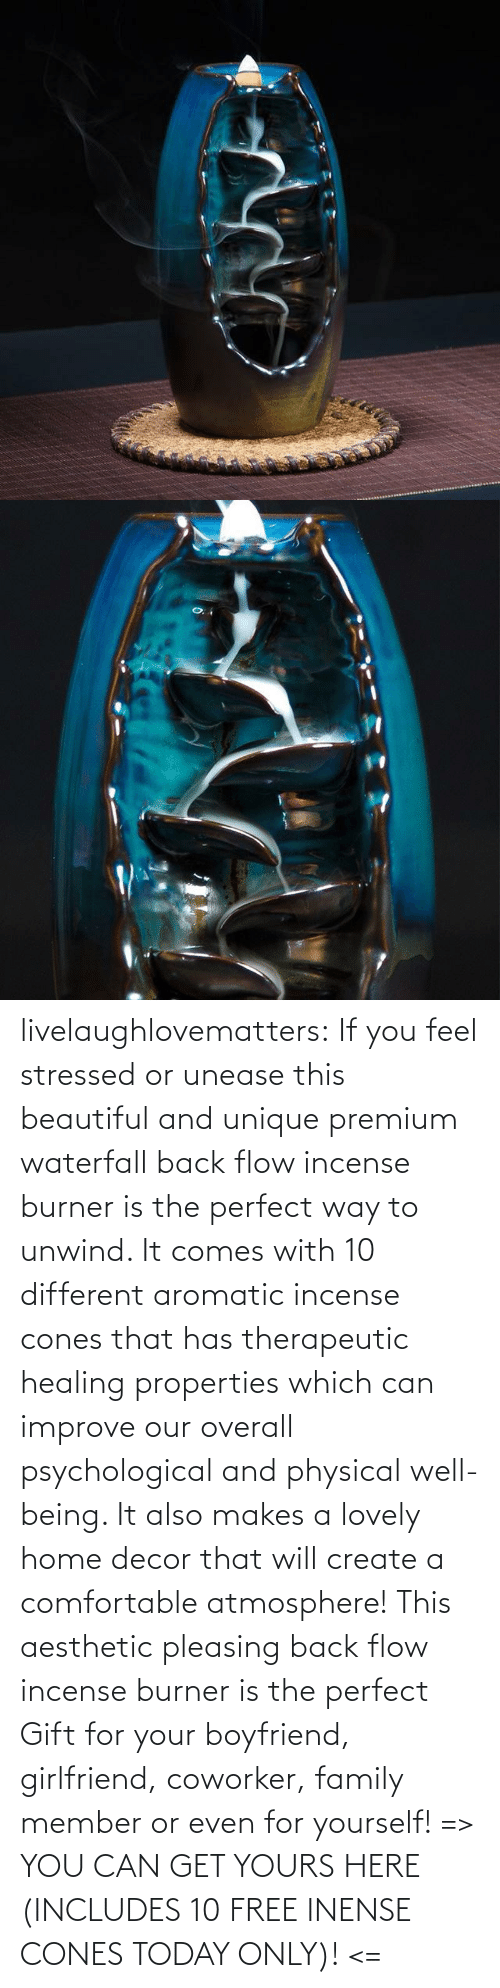 create: livelaughlovematters: If you feel stressed or unease this beautiful and unique premium waterfall back flow incense burner is the perfect way to unwind. It comes with 10 different aromatic incense cones that has therapeutic healing properties which can improve our overall psychological and physical well-being. It also makes a lovely home decor that will create a comfortable atmosphere! This aesthetic pleasing back flow incense burner is the perfect Gift for your boyfriend, girlfriend, coworker, family member or even for yourself! => YOU CAN GET YOURS HERE (INCLUDES 10 FREE INENSE CONES TODAY ONLY)! <=